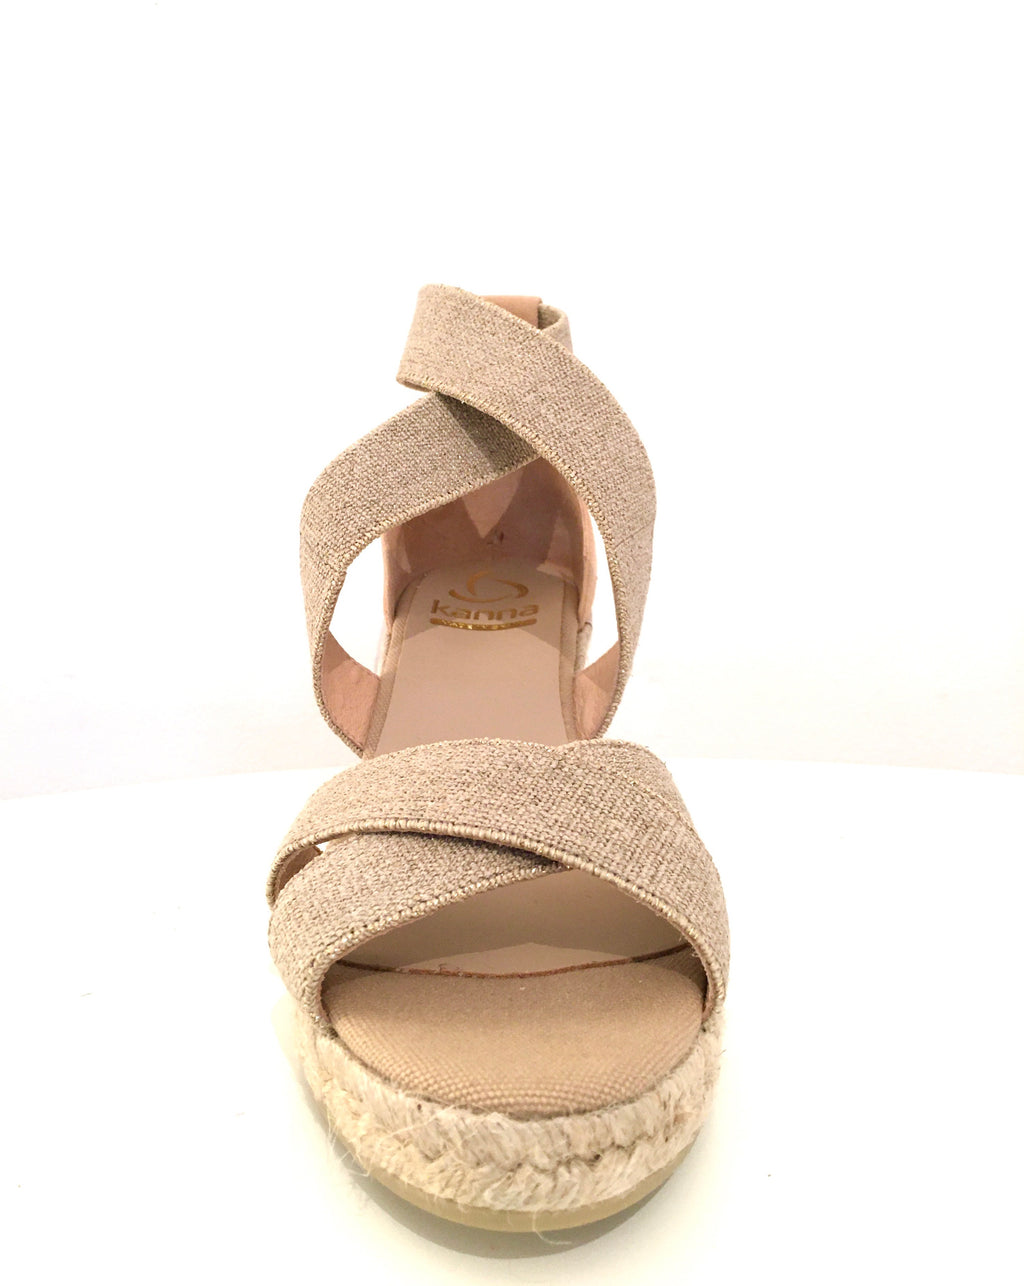 Kanna Elastic Lurex Cross Over Wedges - Beige